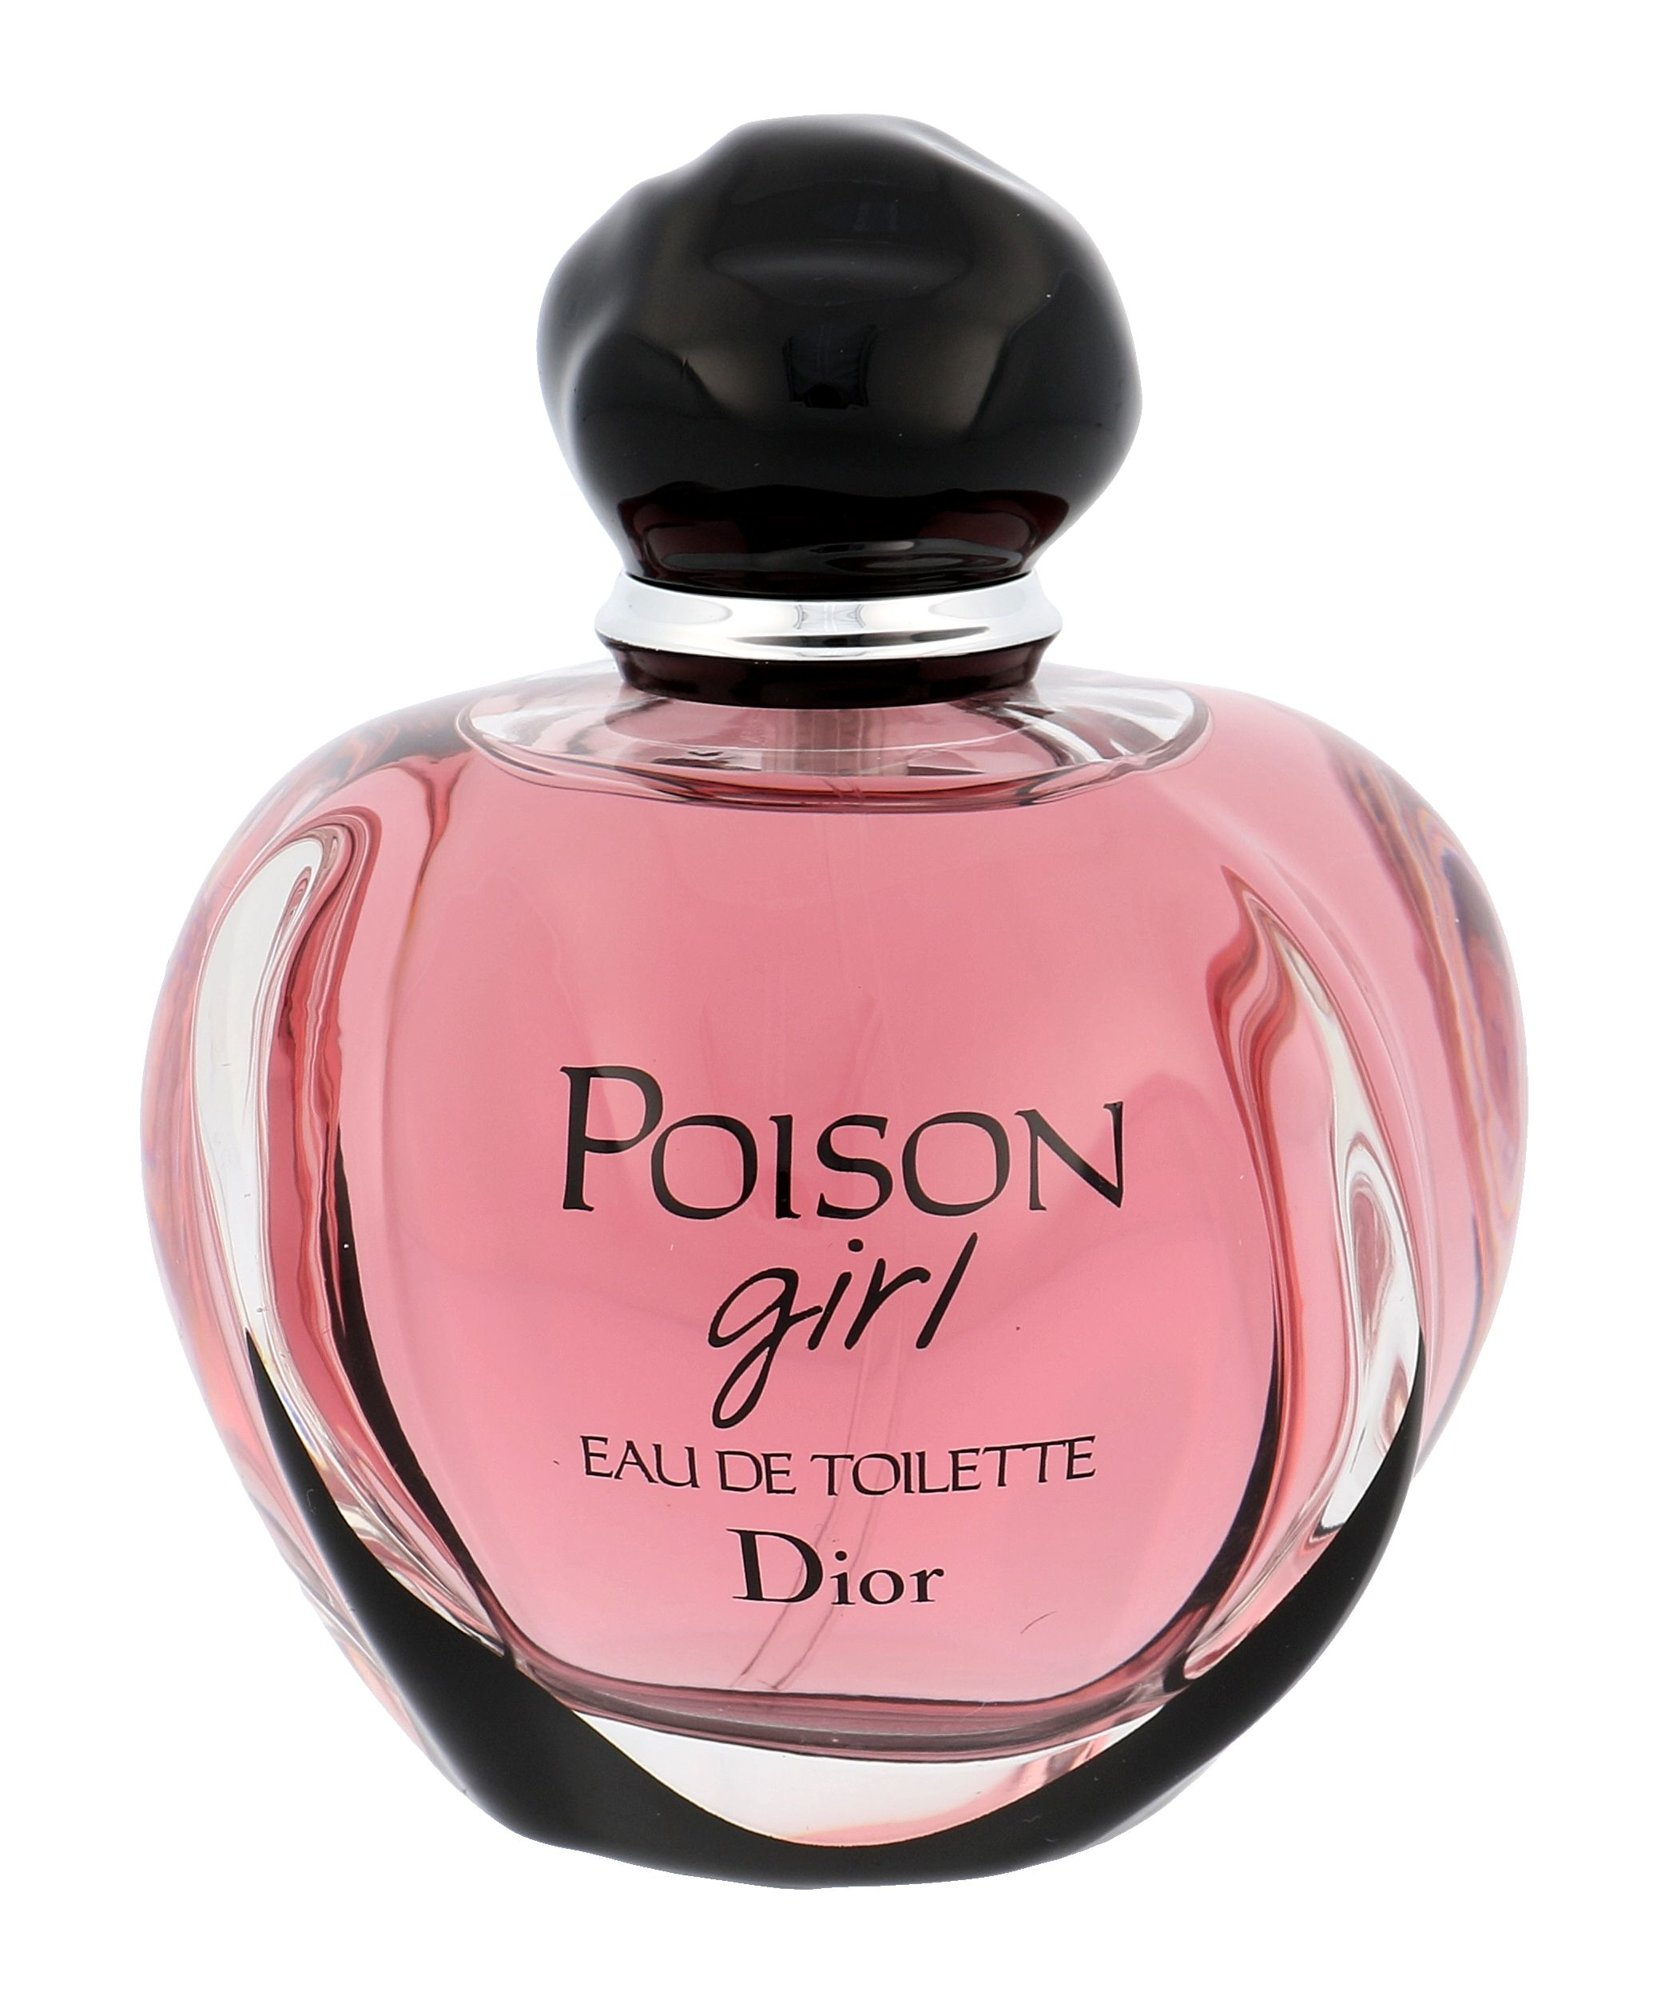 Christian Dior Poison Girl Eau de Toilette 100ml